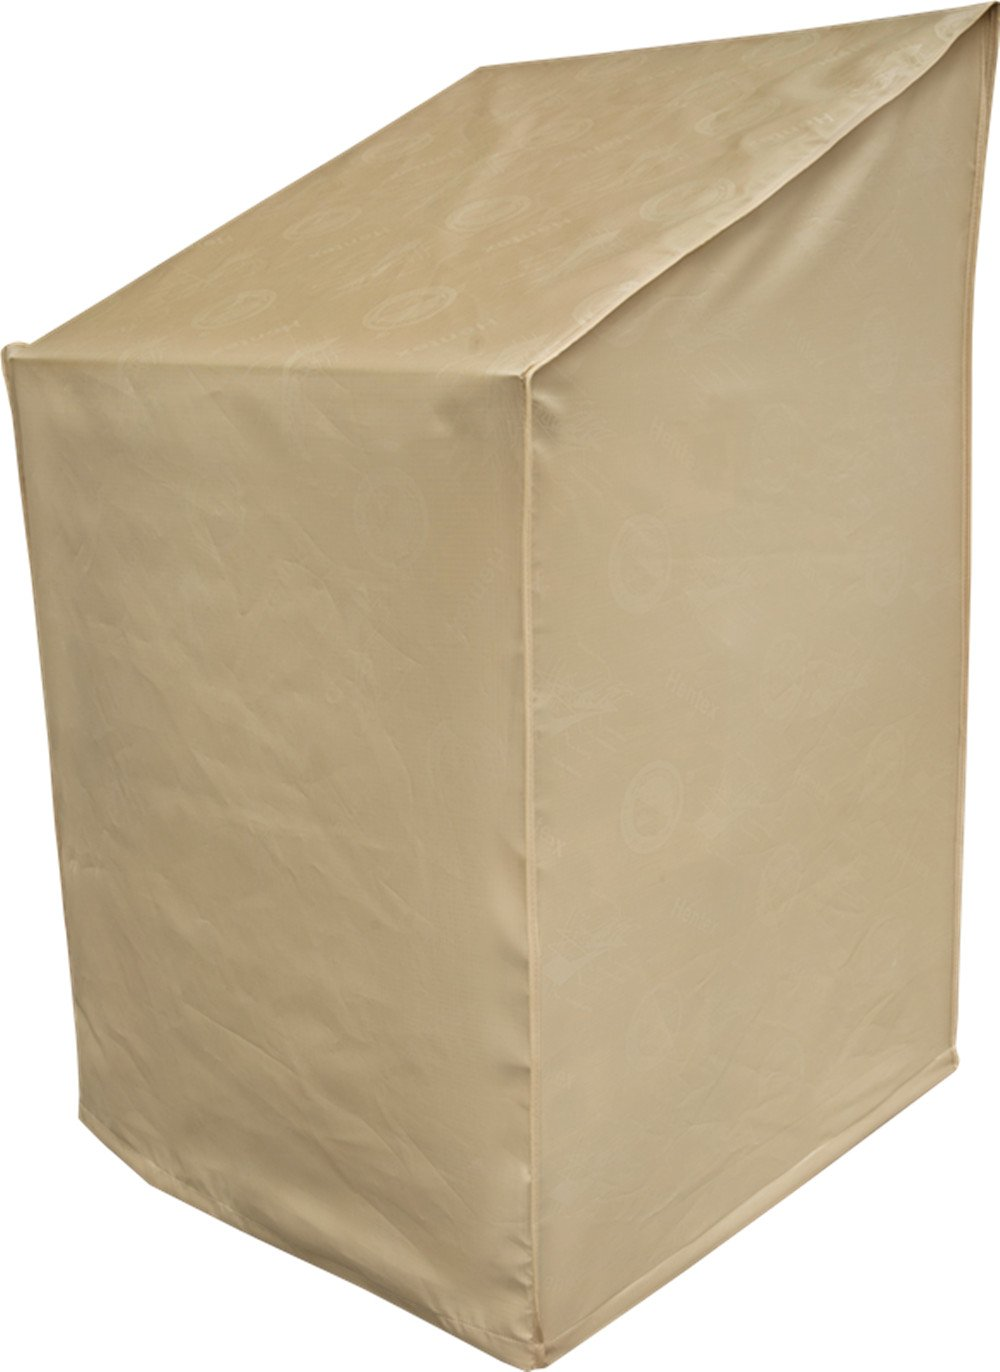 Hentex 5505 Outdoor Patio High Back Chair Cover, Breathable 3 Layer Eco Durable Waterproof, Velvet Liner Tight Fit by 2 Stopper Drawstring & Leg Buckles,33'' L×28'' W×3''/25.6'' H,Khaki